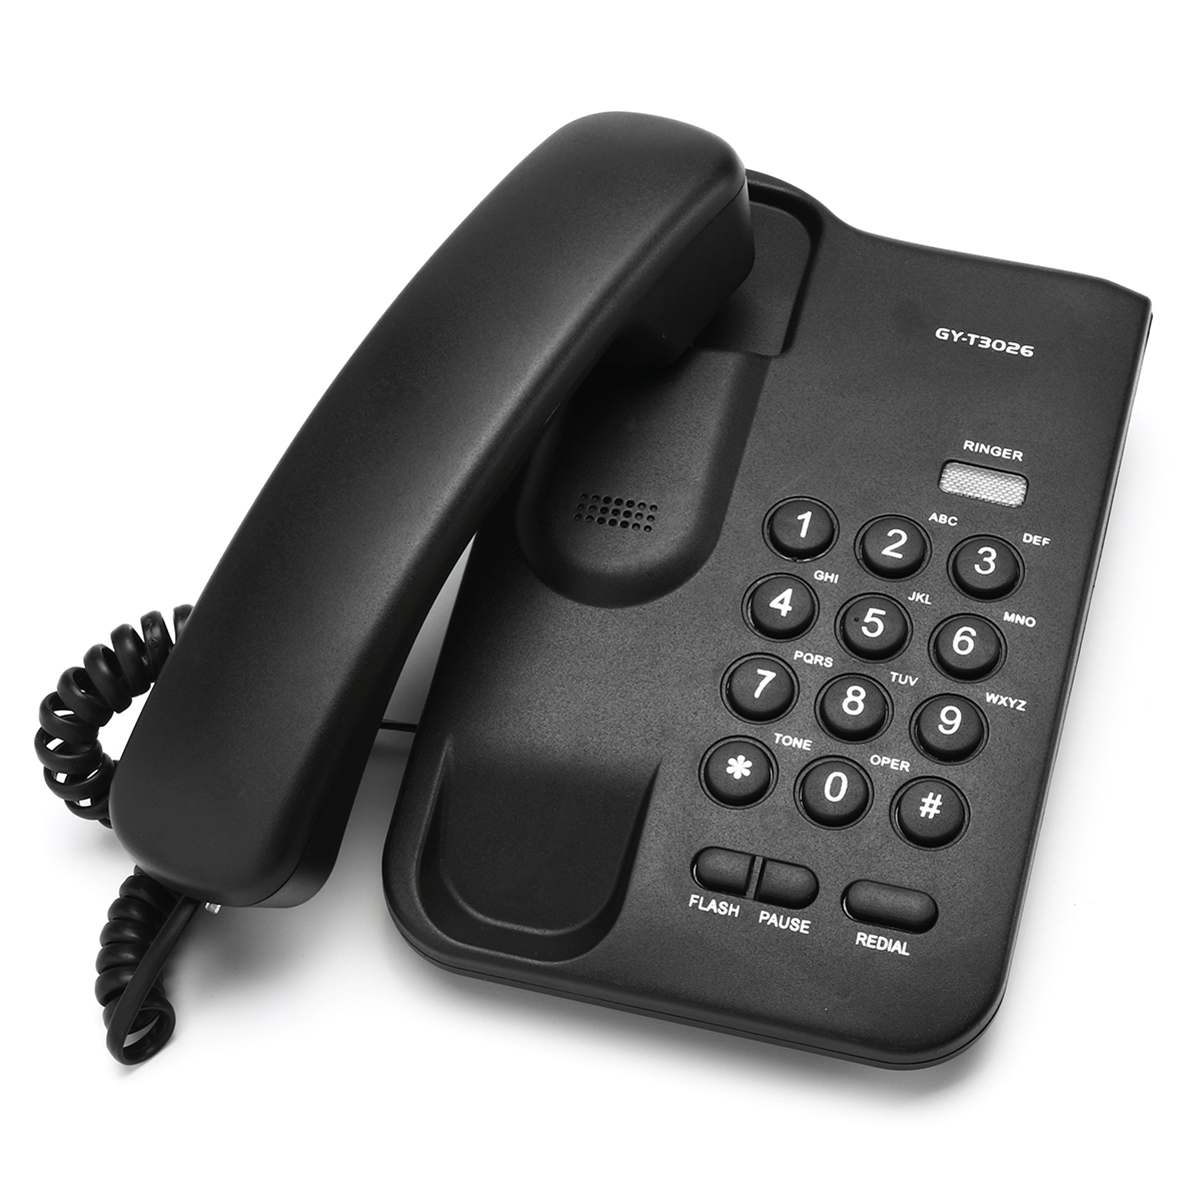 White Black Desktop Home Wall Mount Office Corded Phone Telephone Home Hotel Wired Landline Telephone 12*19*7.5cm